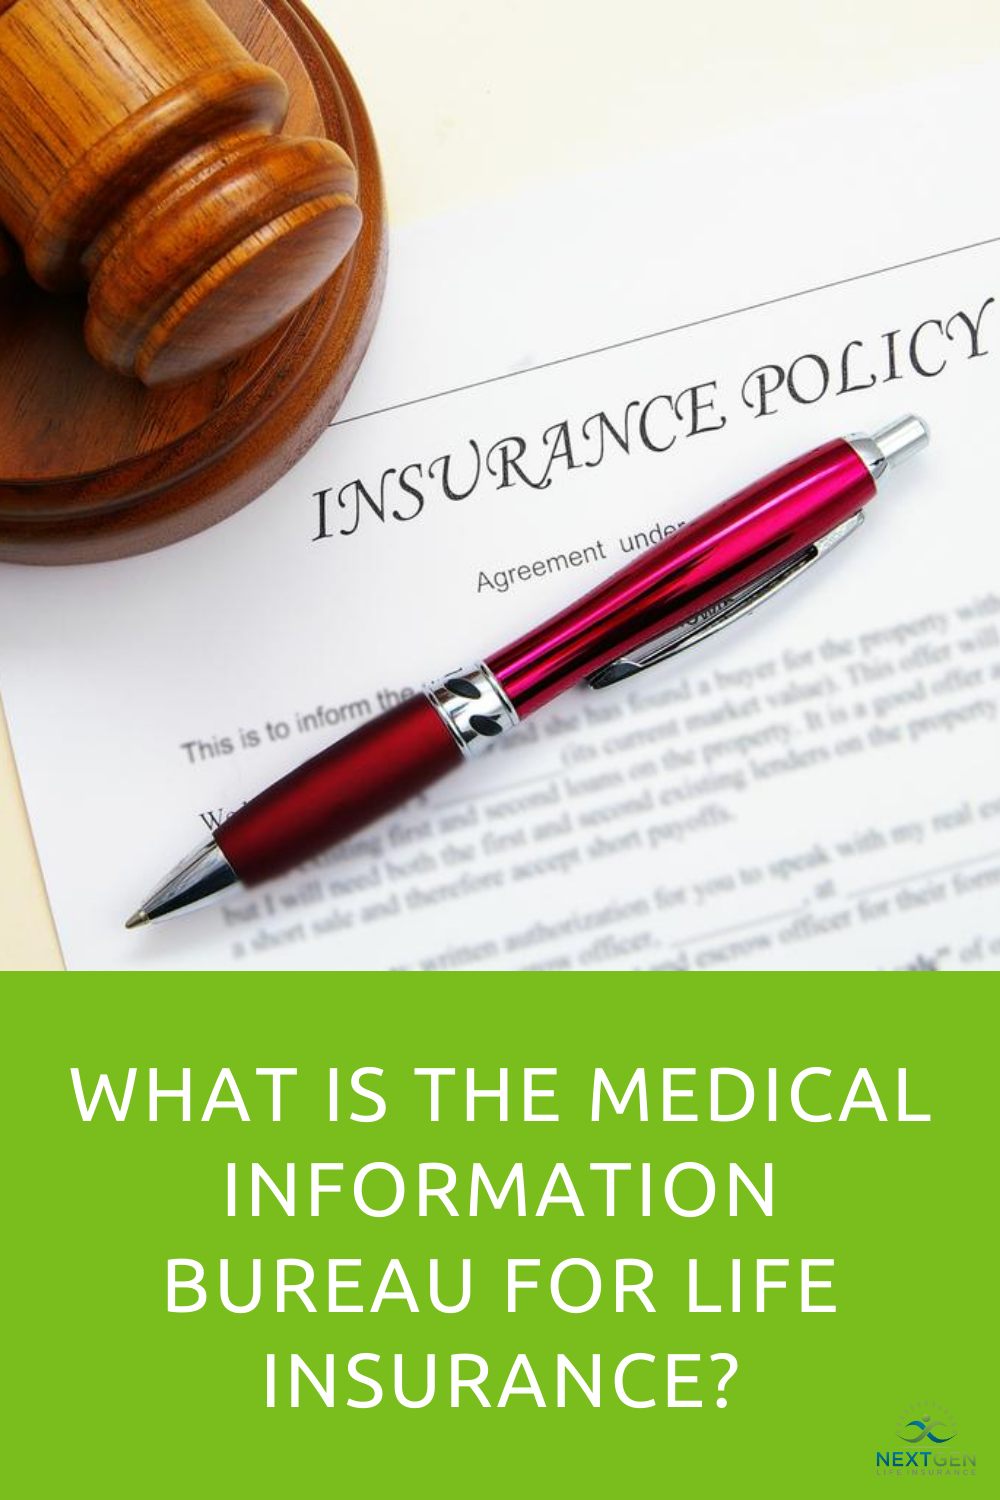 What is the Medical Information Bureau for Life Insurance